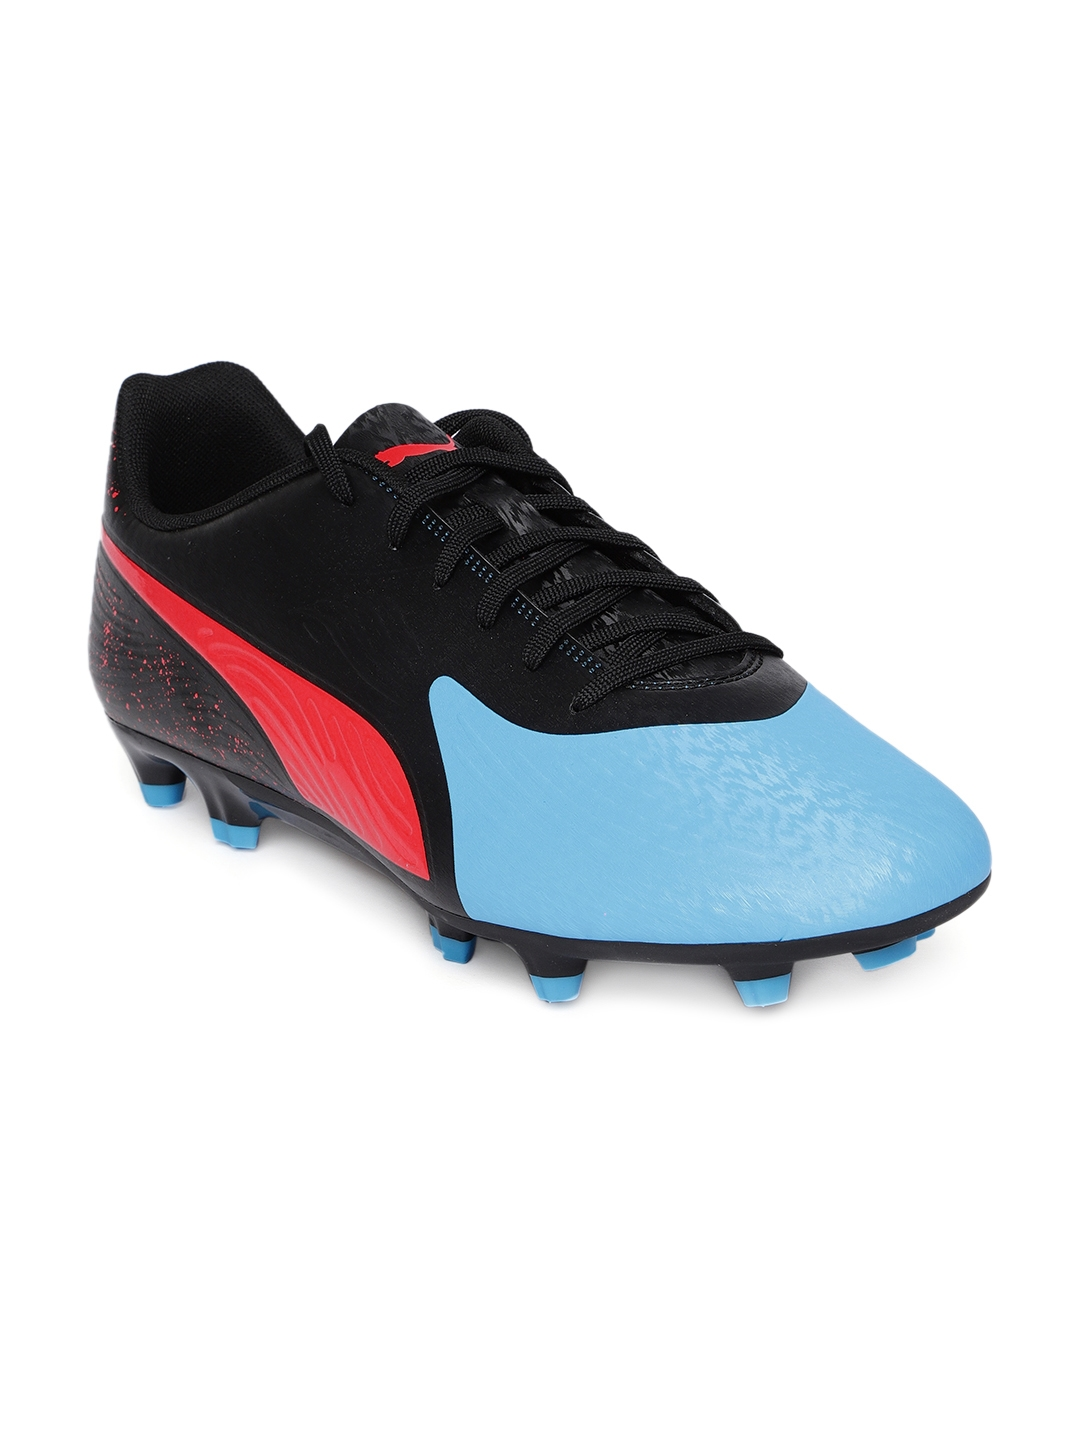 2e66aca8195 Buy Puma Men Blue   Black ONE 19.4 FG AG Football Shoes - Sports ...